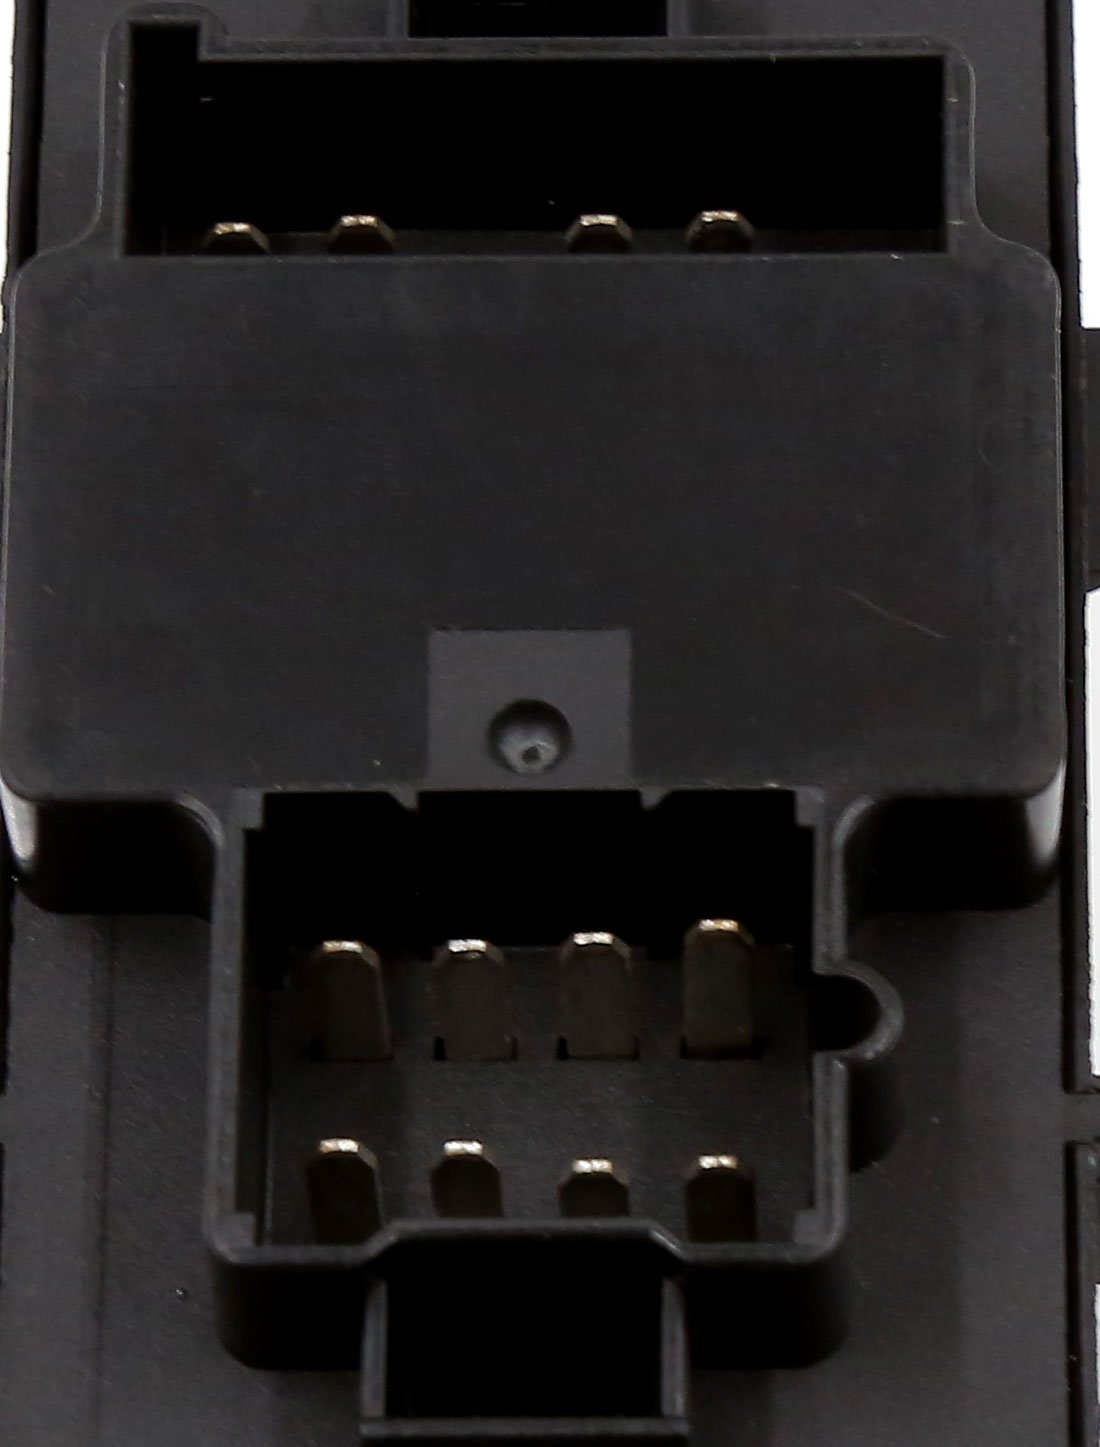 Uxcell a15091000ux0677 Power Window Switch